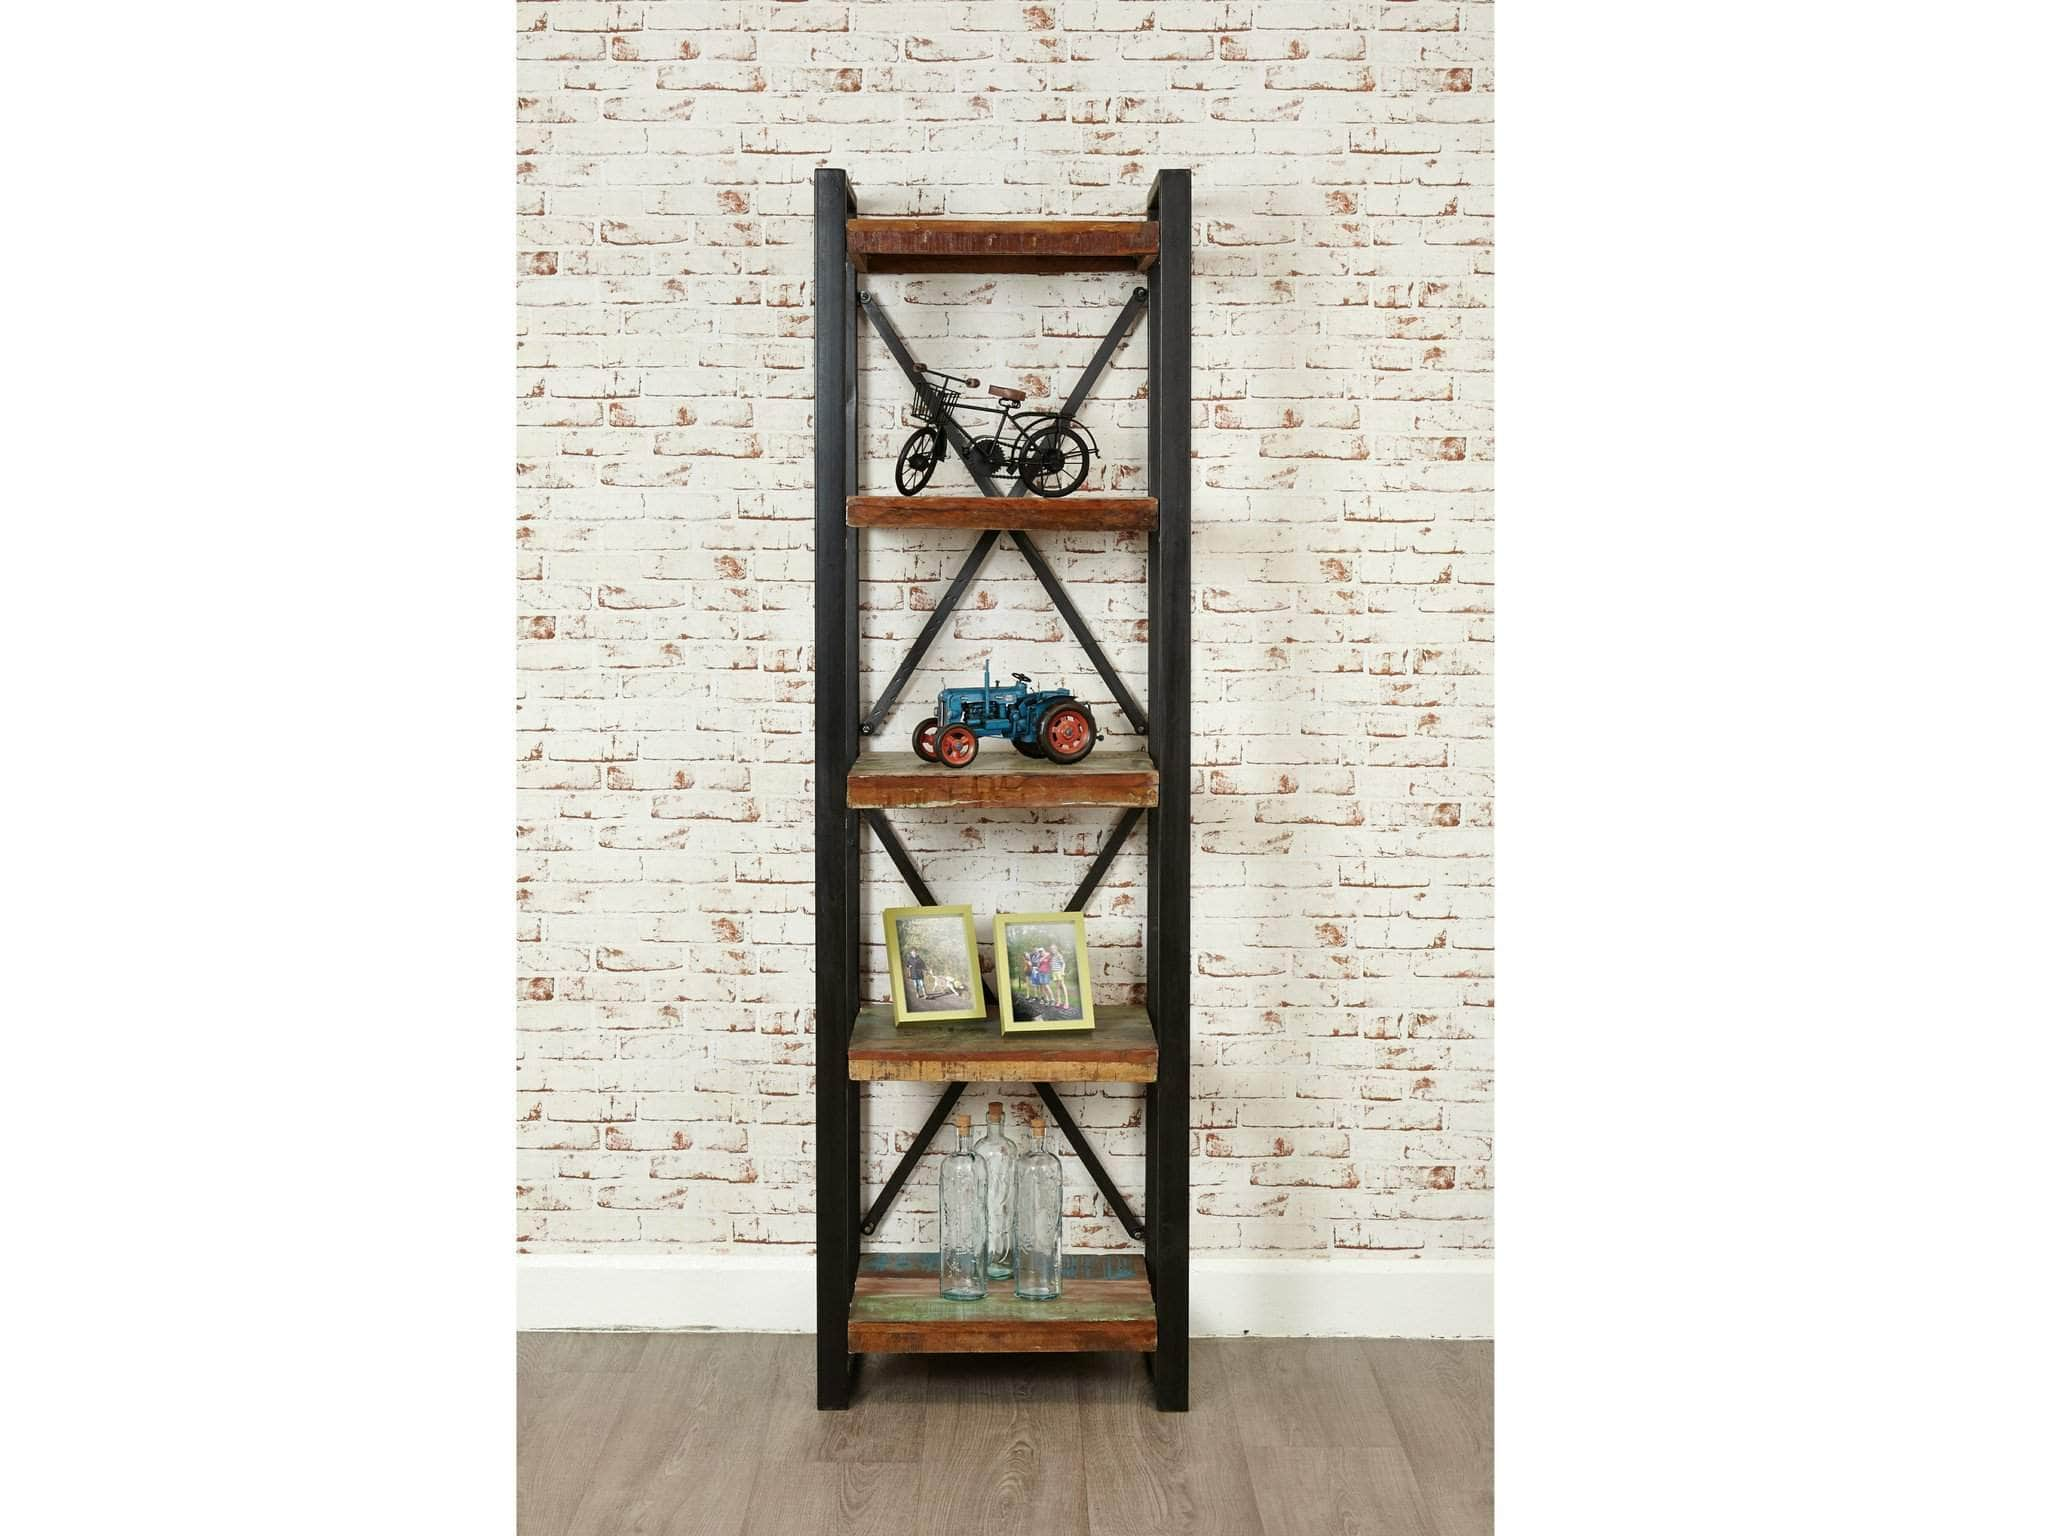 Small Reclaimed Wood Bookcase; Small Reclaimed Wood Bookcase Front View